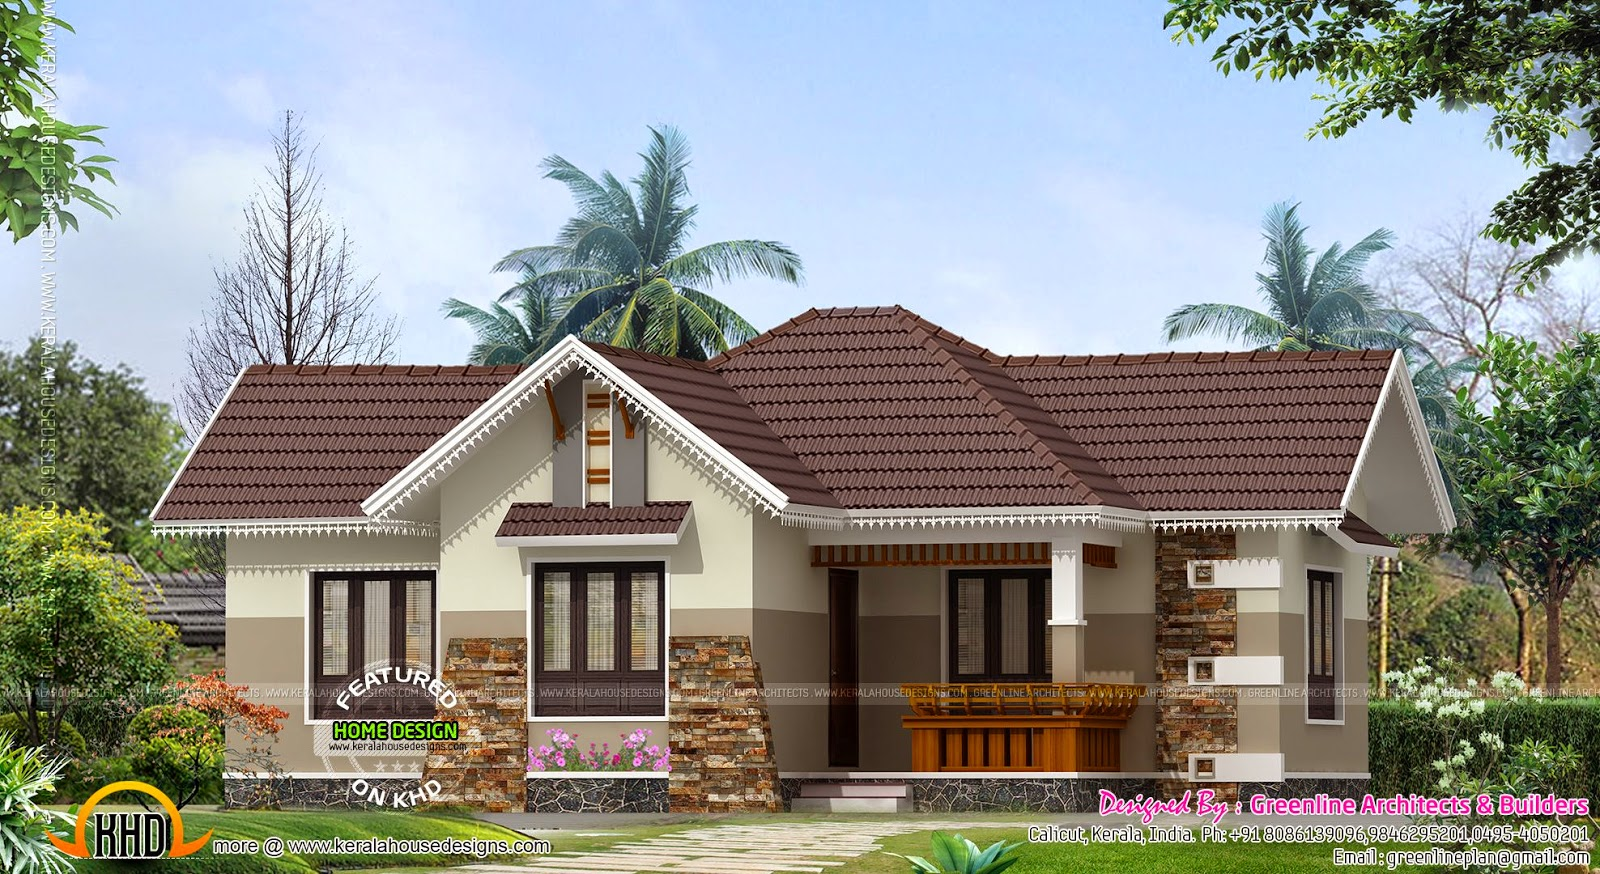 nice home plans small house exterior kerala home design and floor plans 14388